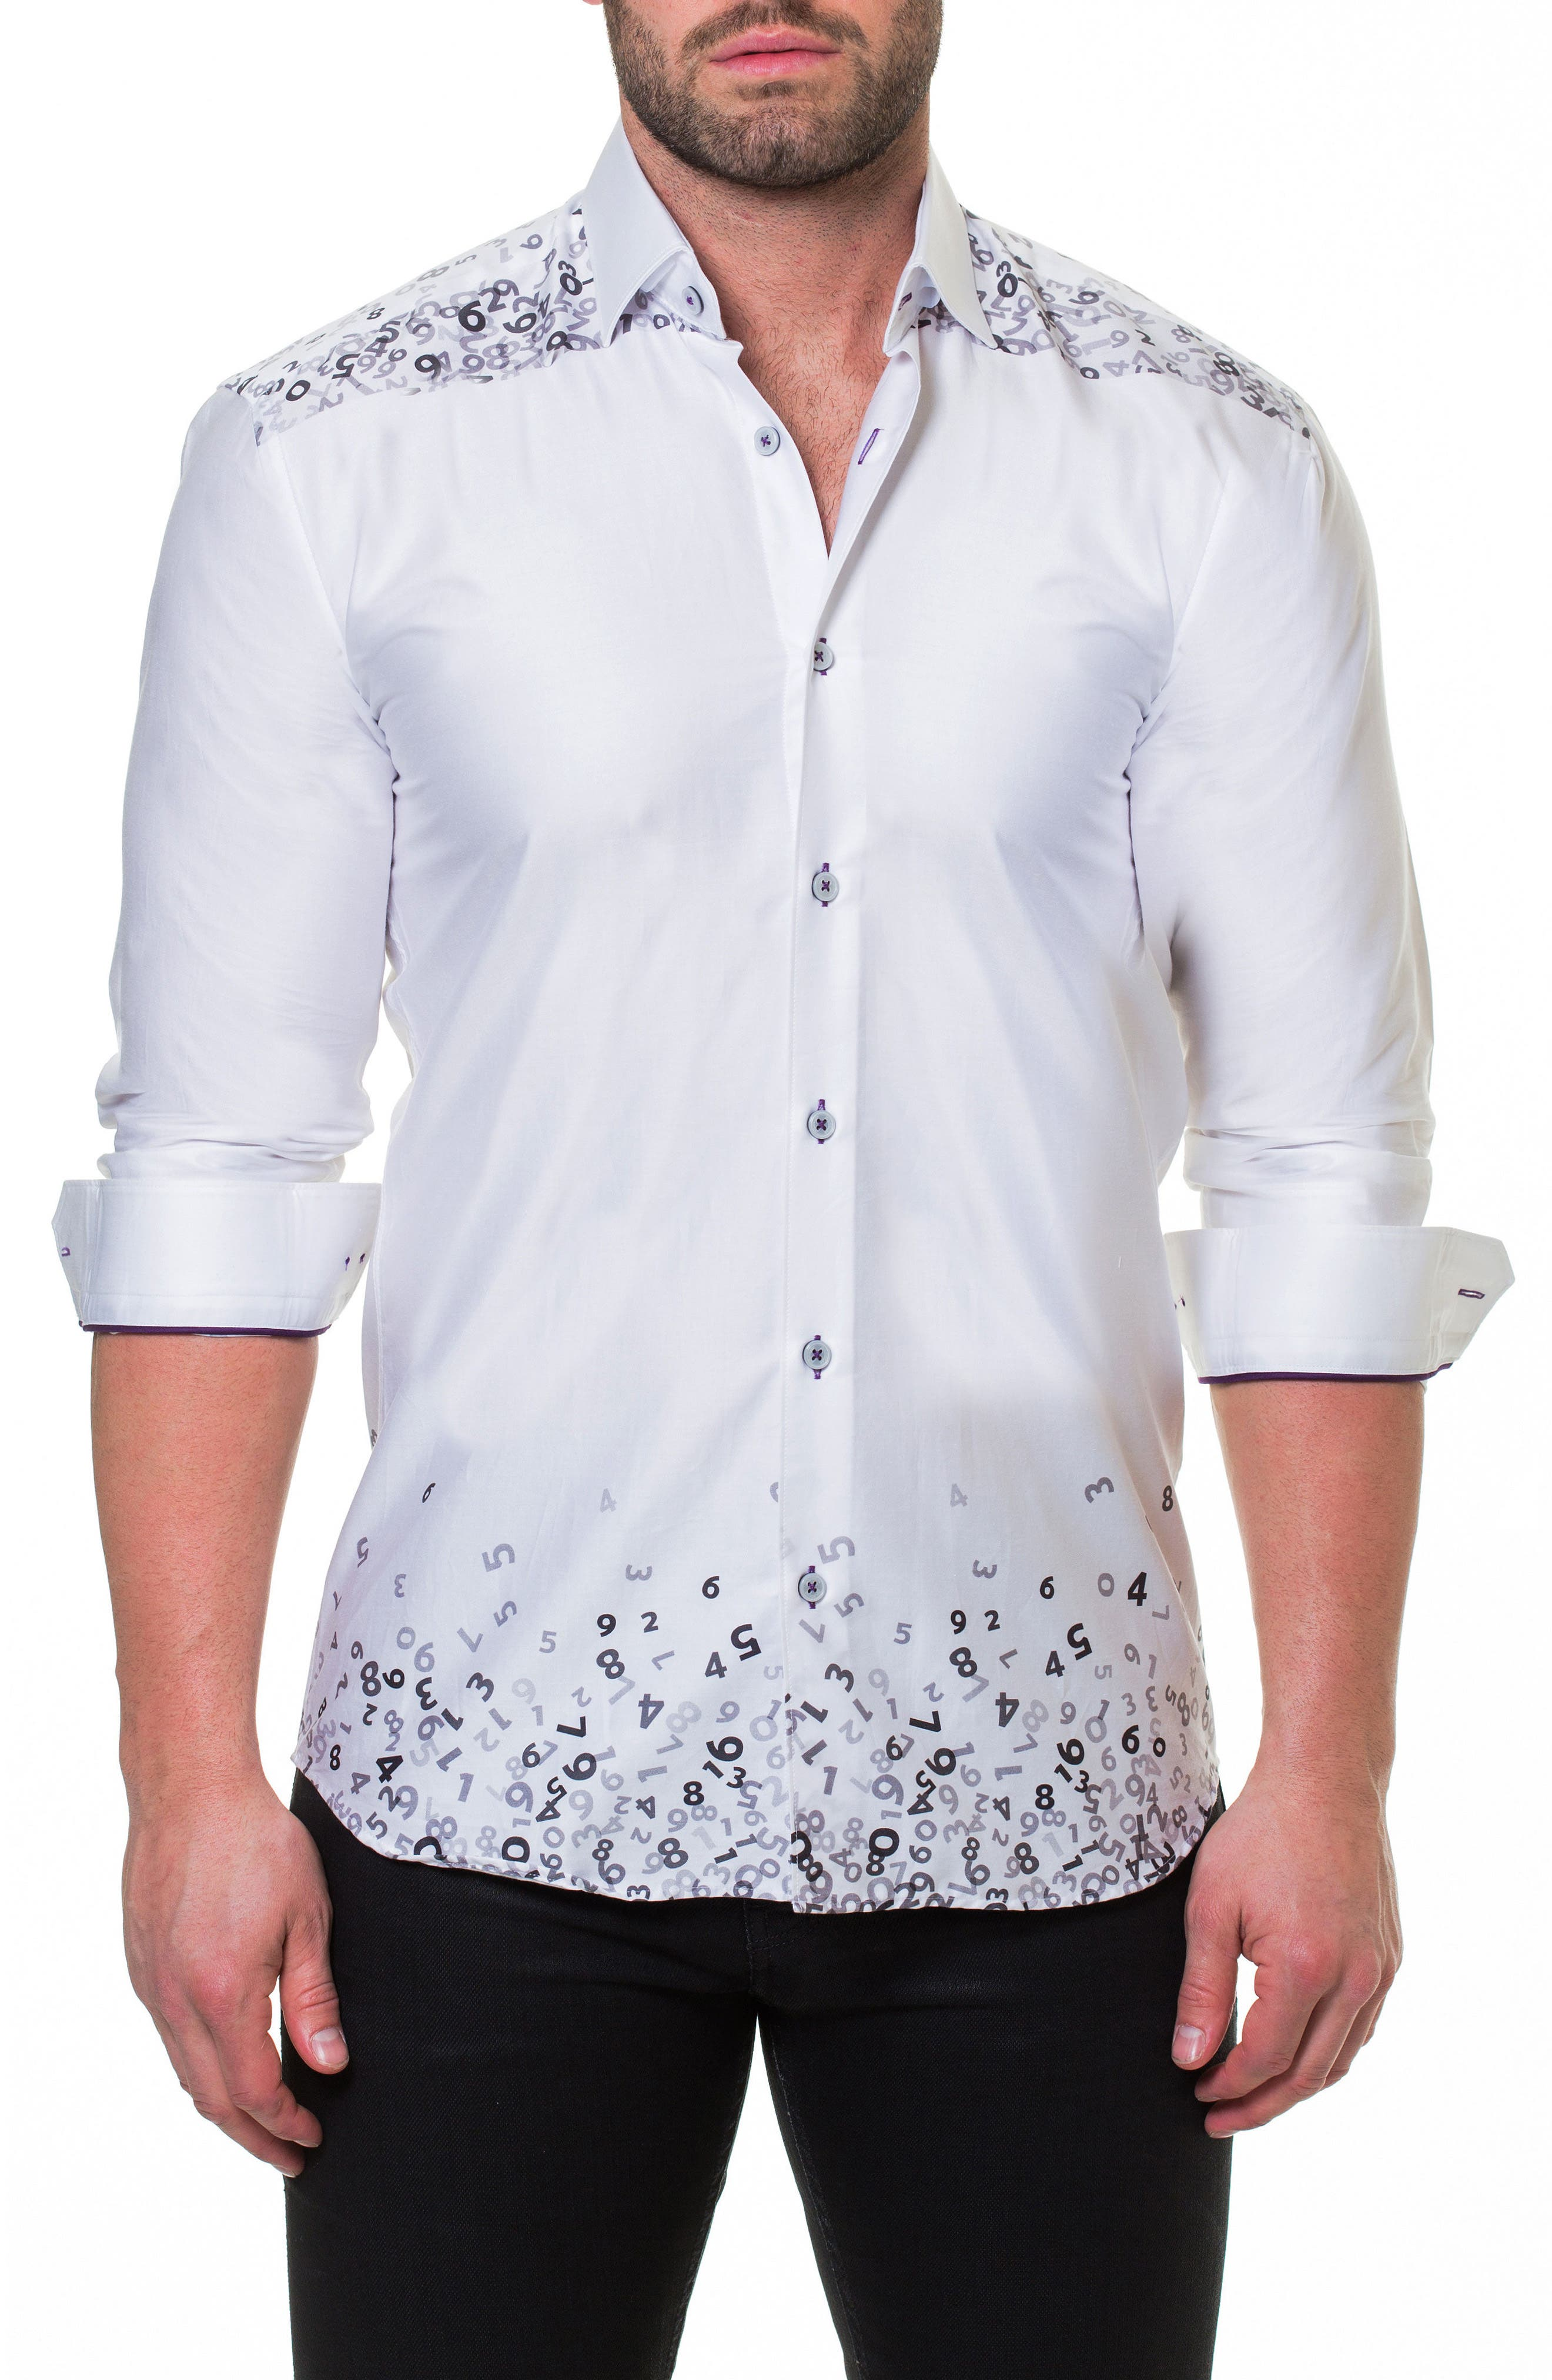 Luxor Counting White Slim Fit Sport Shirt,                             Main thumbnail 1, color,                             White